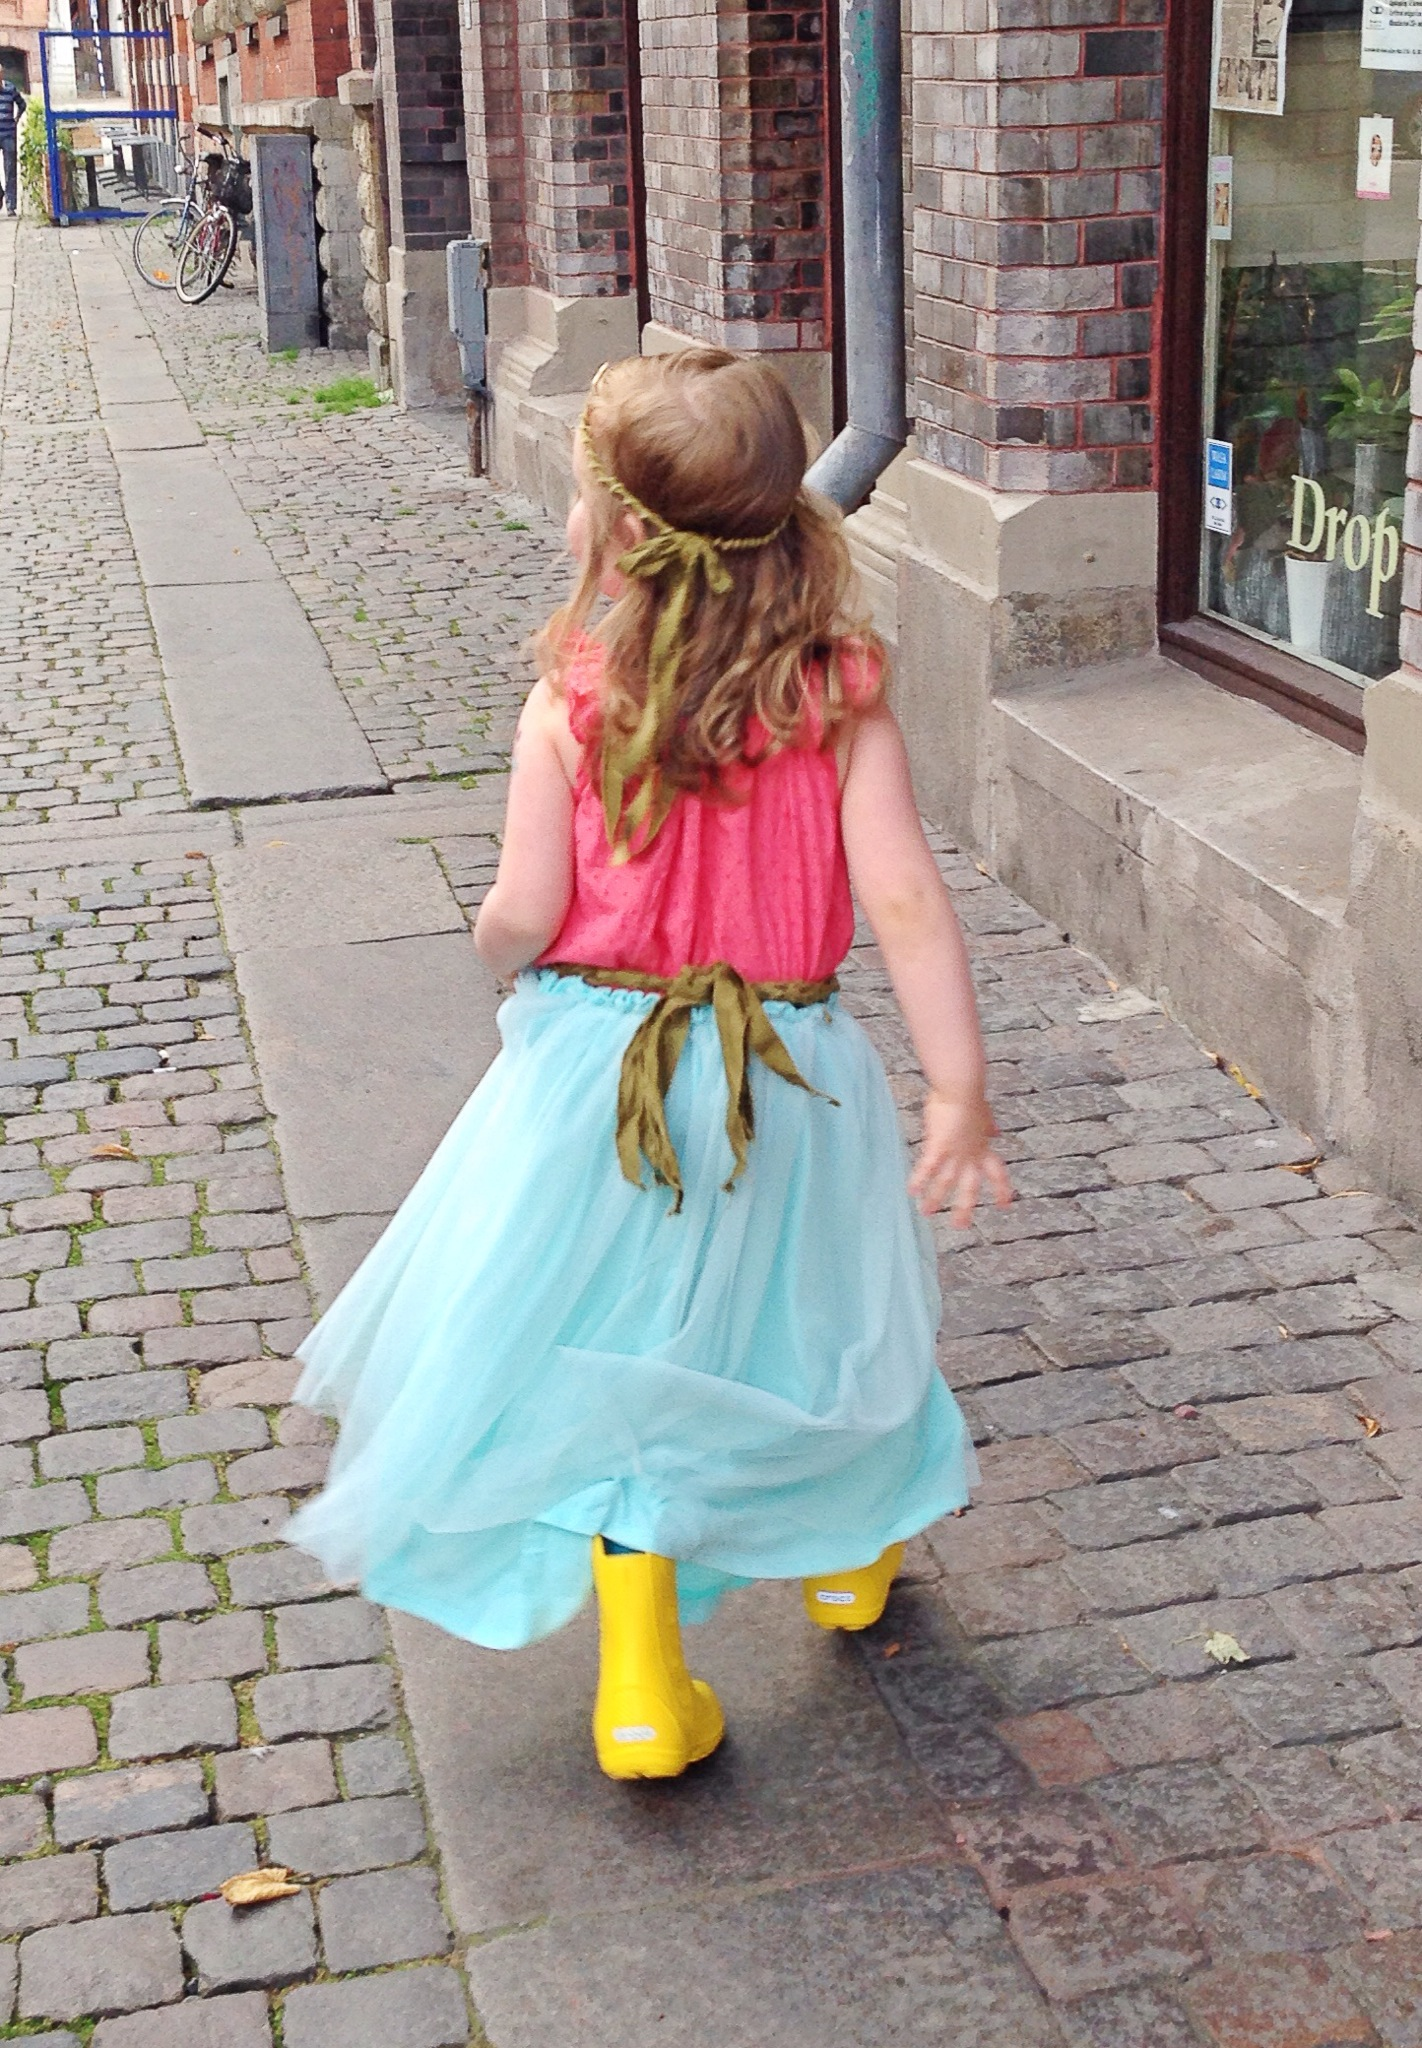 makeshift_mermaid_princess_rainboots_back.JPG